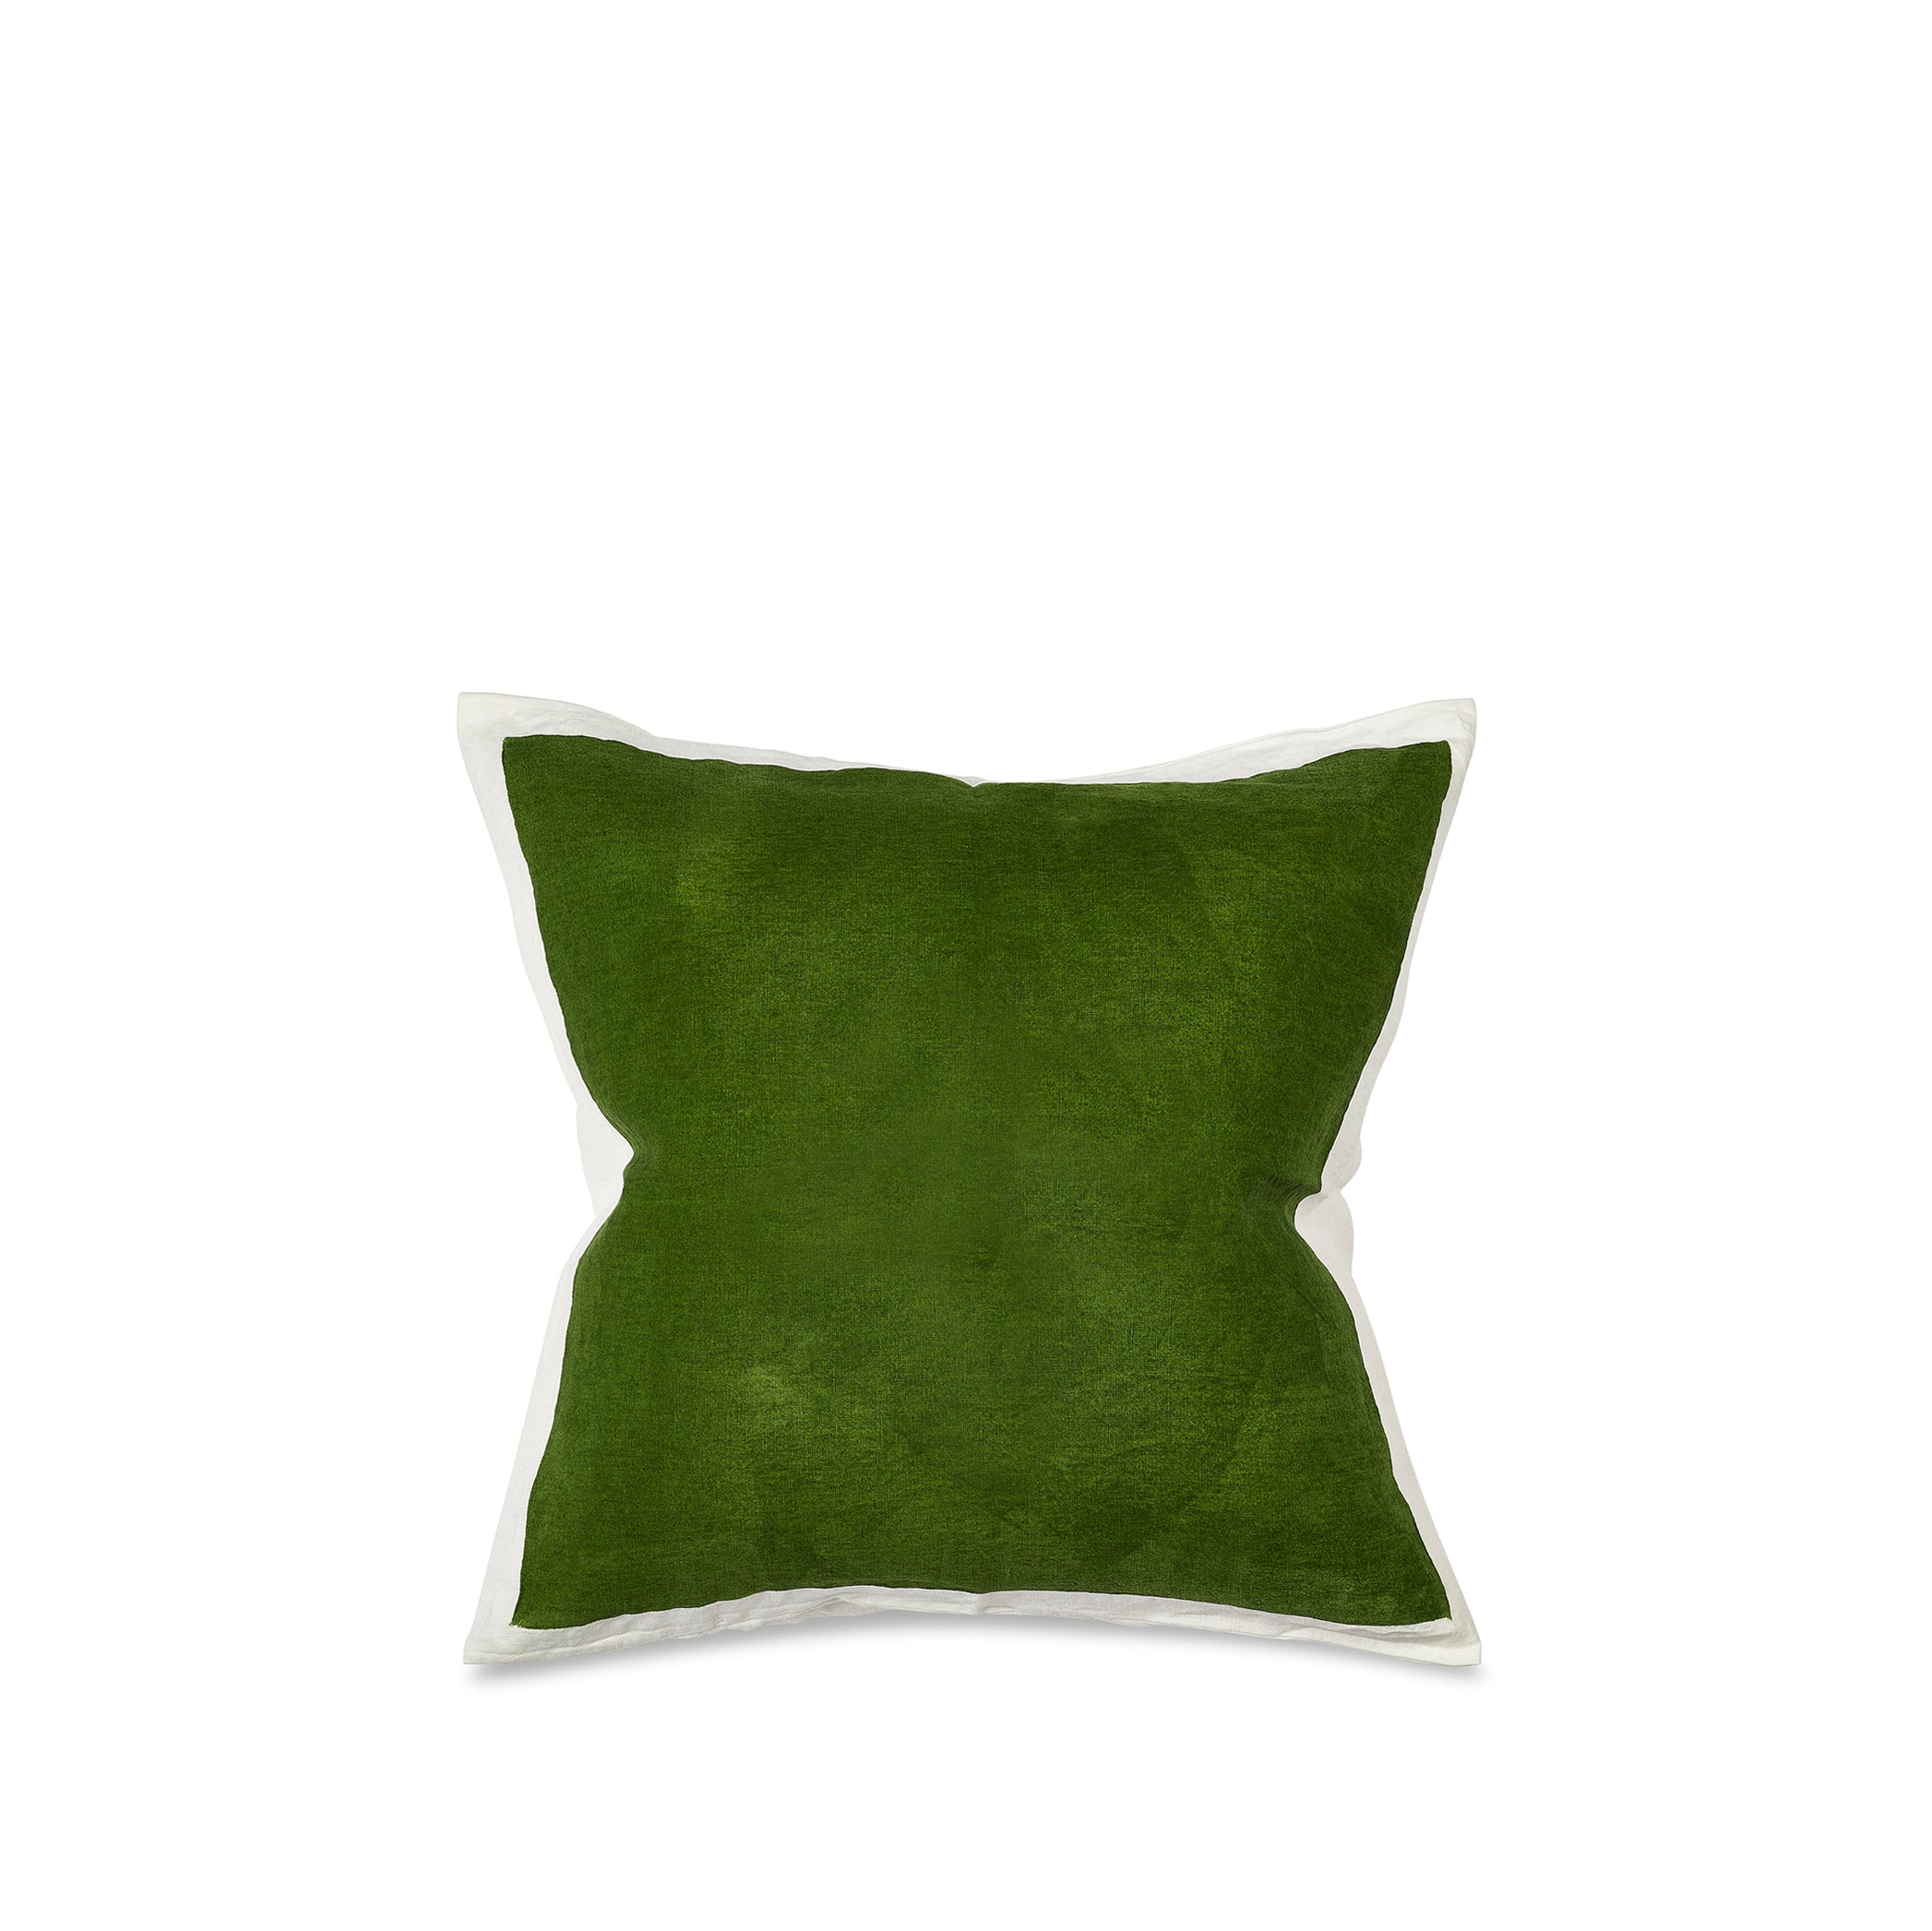 Hand Painted Linen Cushion Cover in Avocado Green, 50cm x 50cm